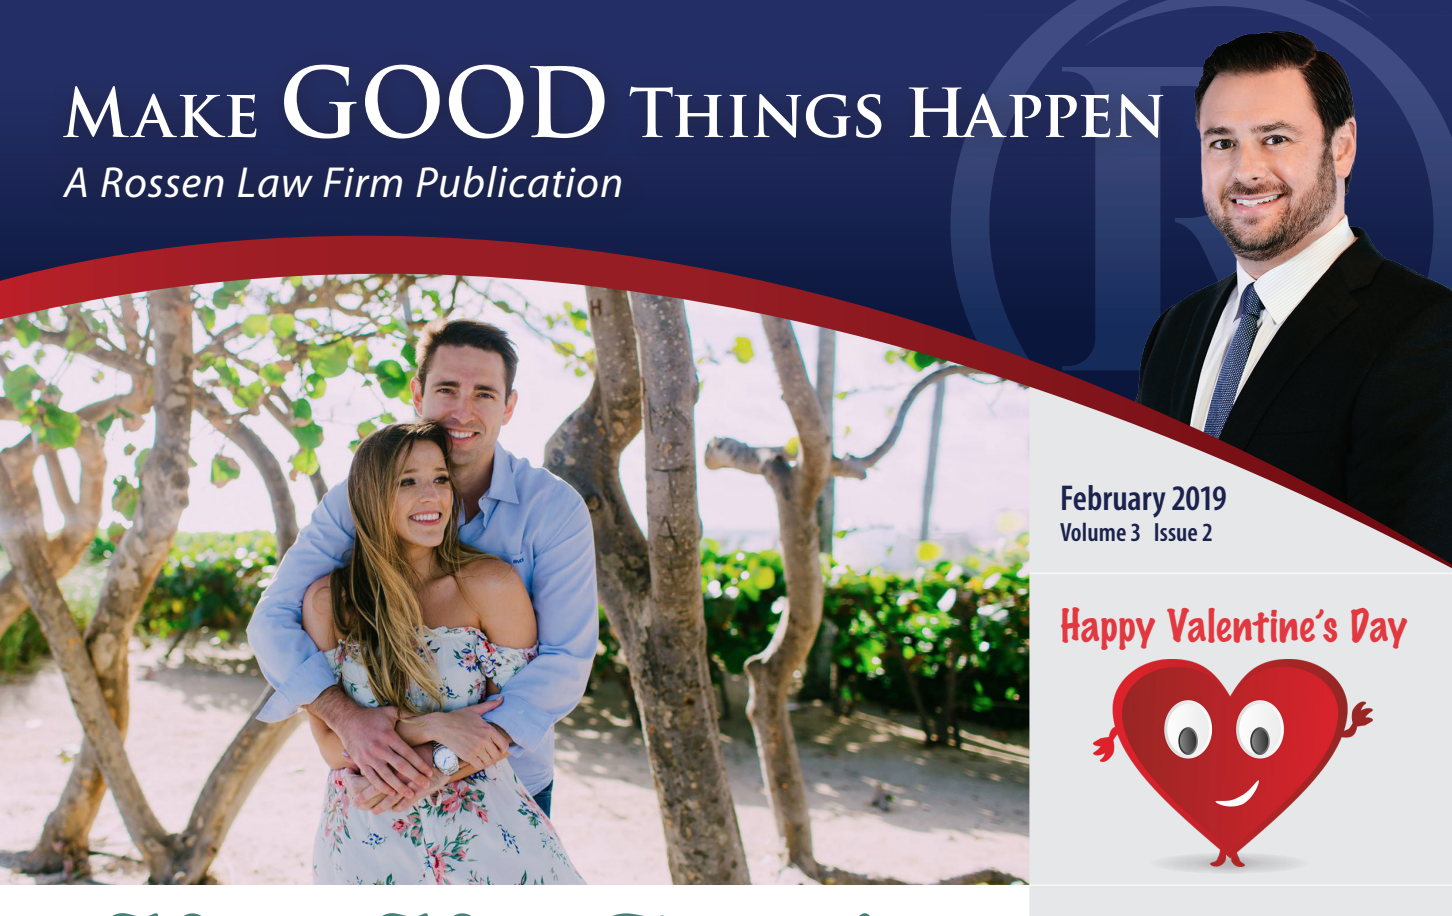 Manny and Astrid pose on the front of Rossen law firm's DUI and criminal defense monthly newsletter for South Florida